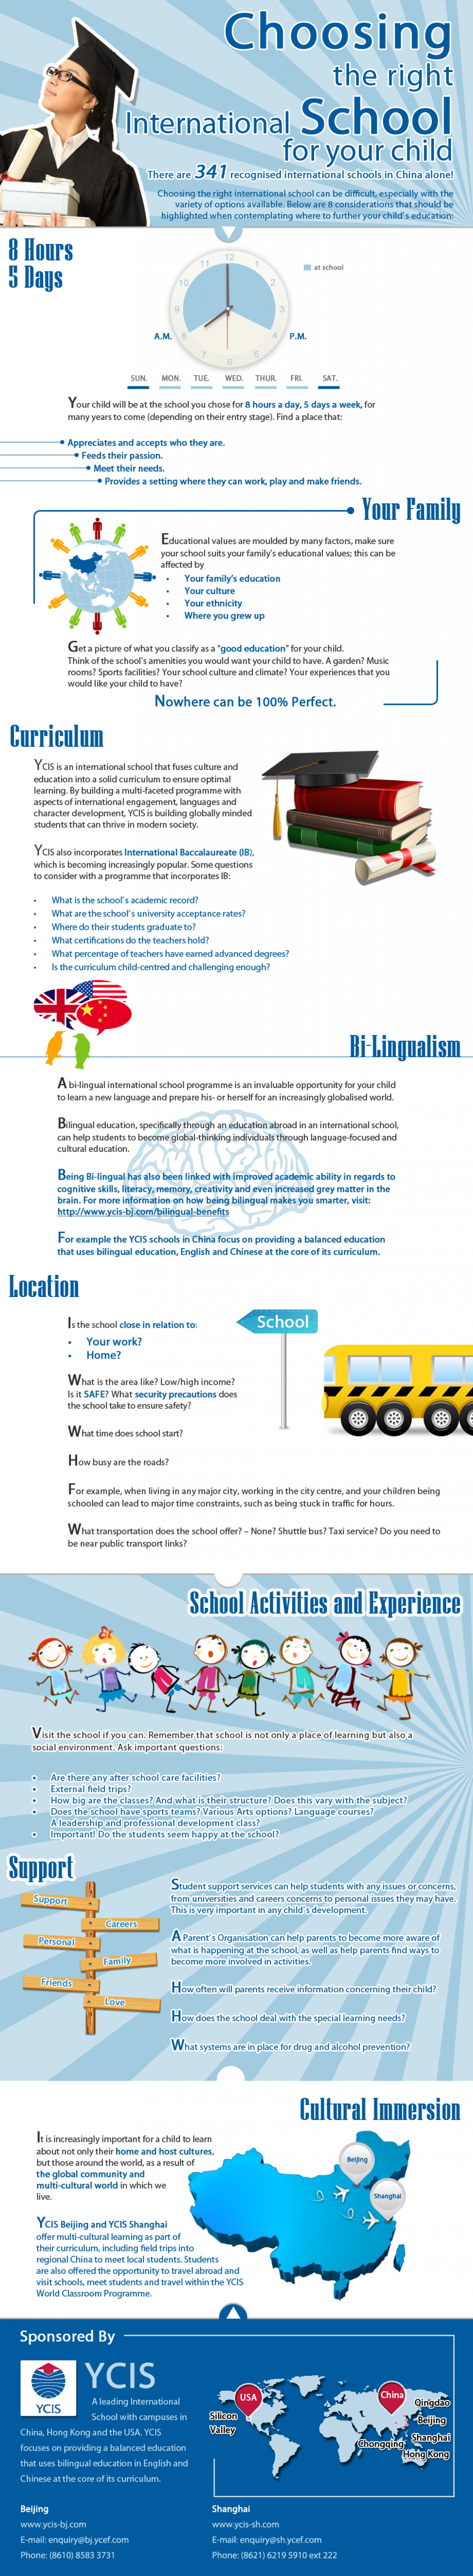 Choosing the right international school for your child Infographic